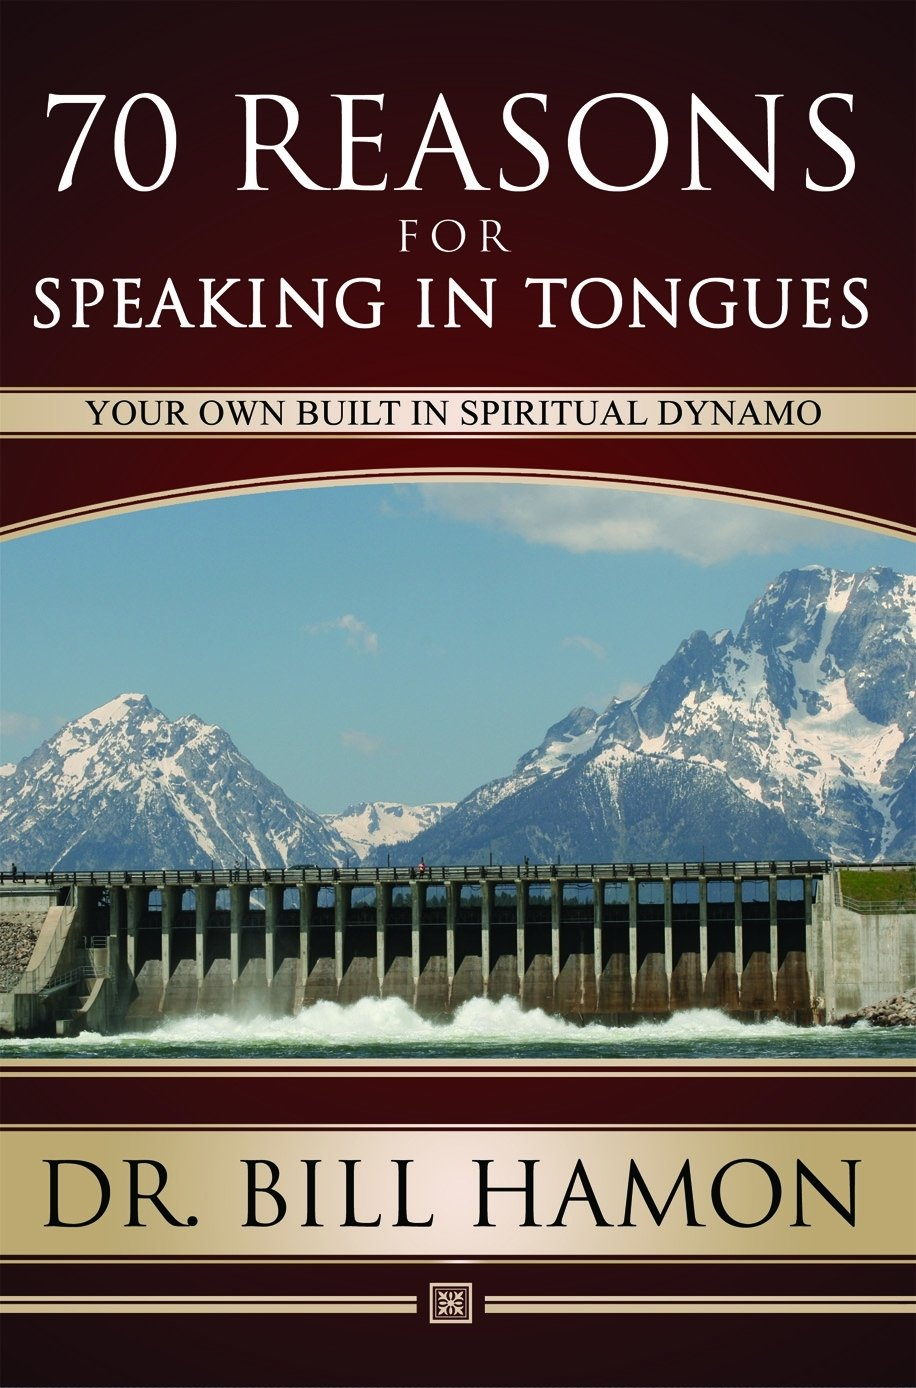 70 Reasons For Speaking In Tongues: Your Own Built In Spiritual